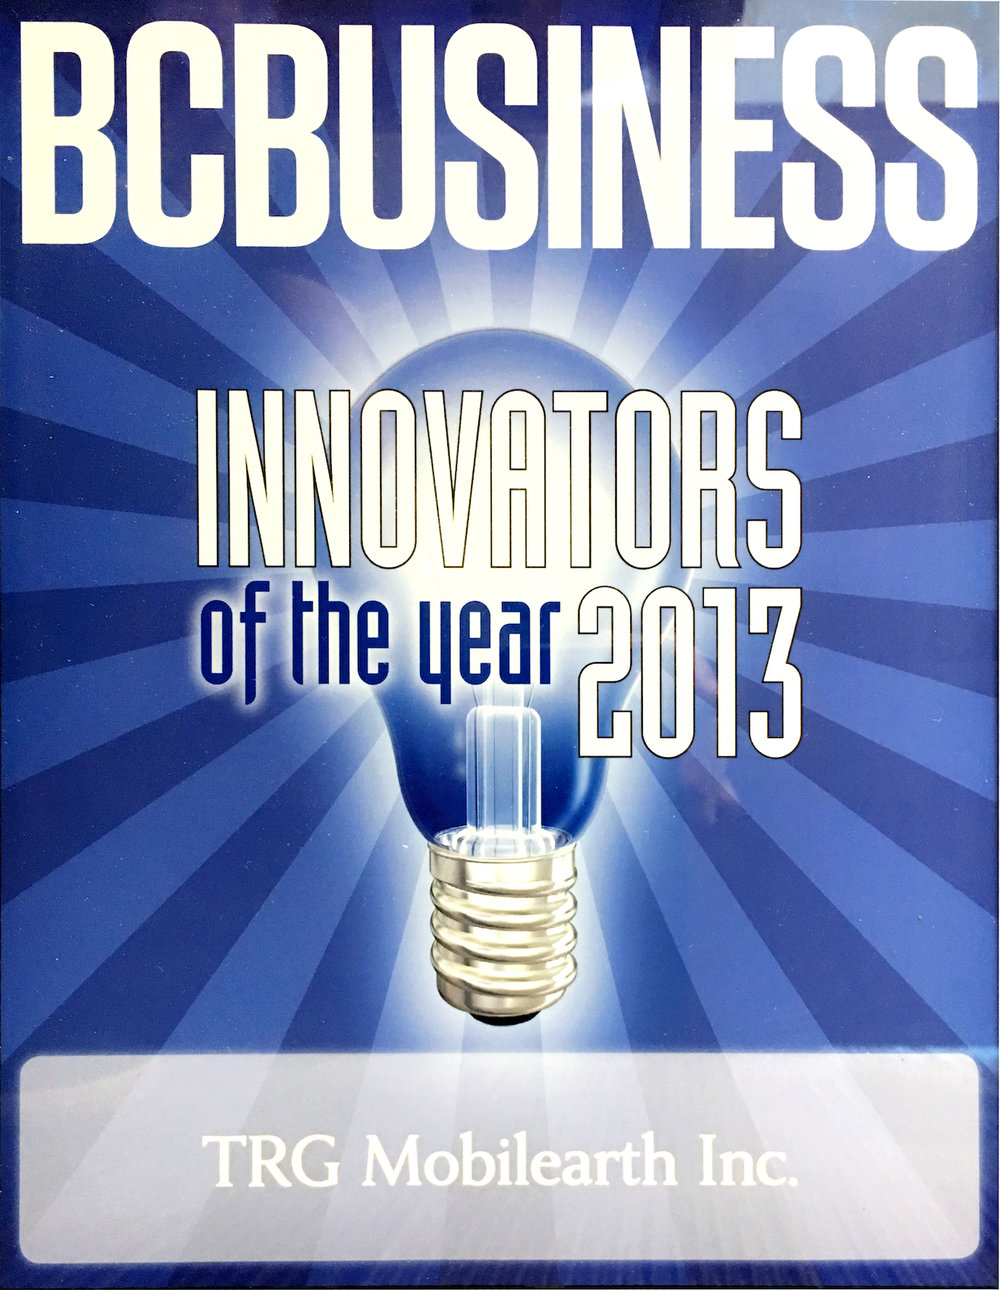 Mobilearth-BCBusiness-Award.jpg